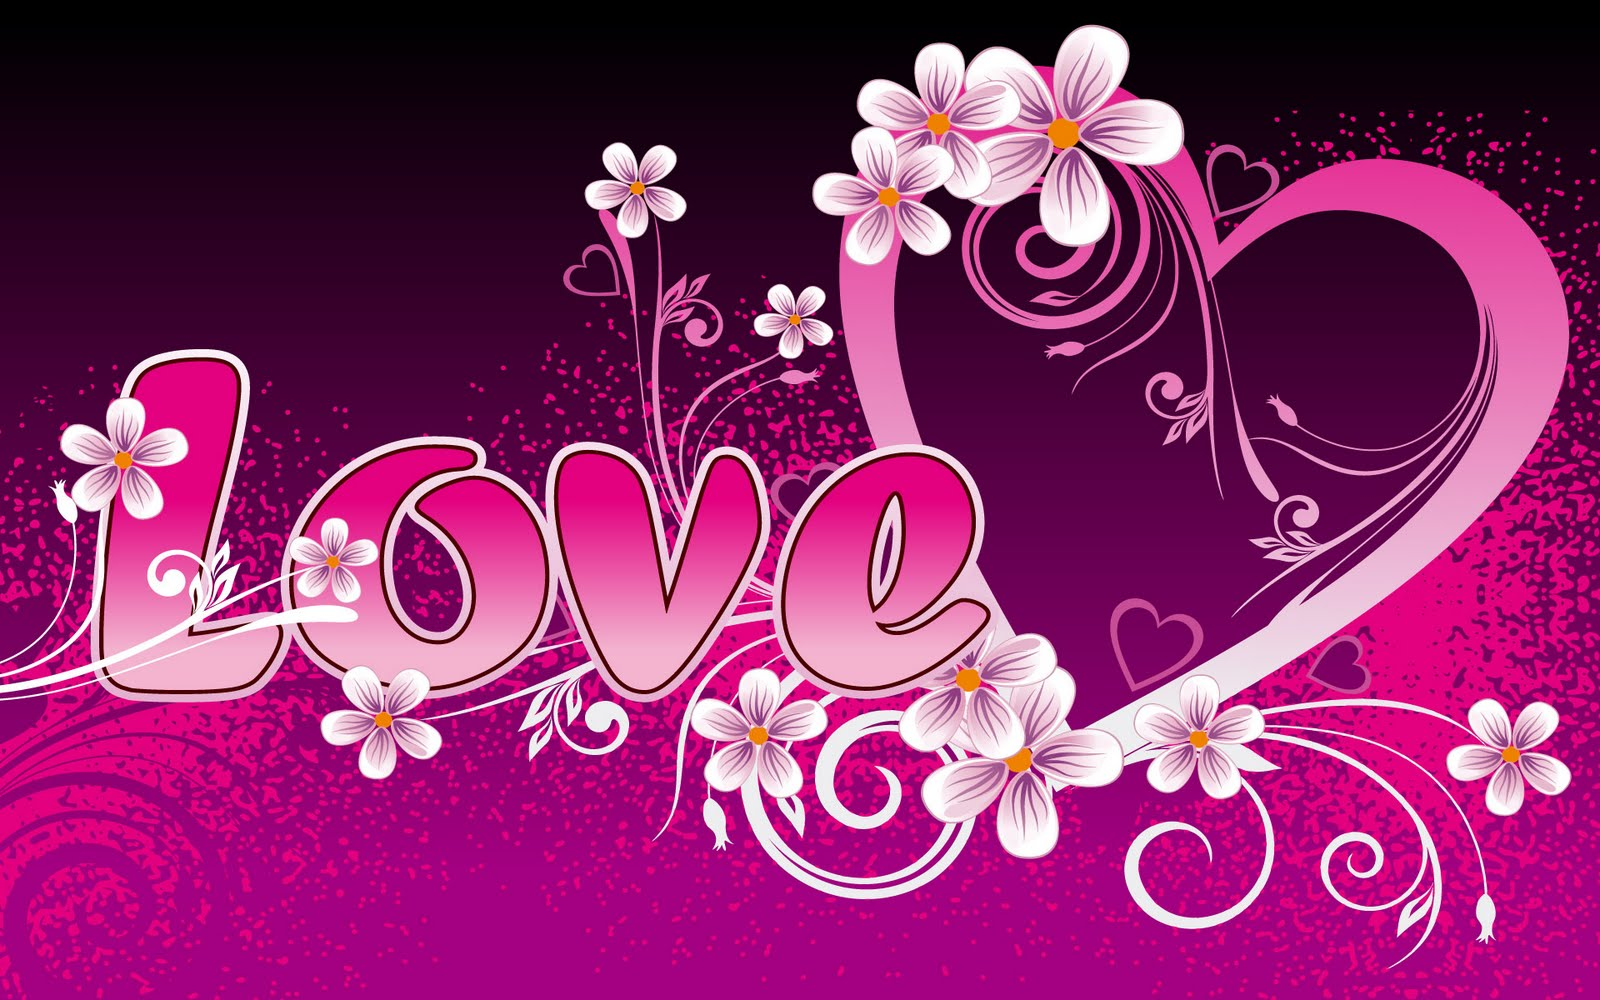 Black Picture Hd Wallpaper Ilona Wallpapers Valentines Day Free Wallpapers Hd